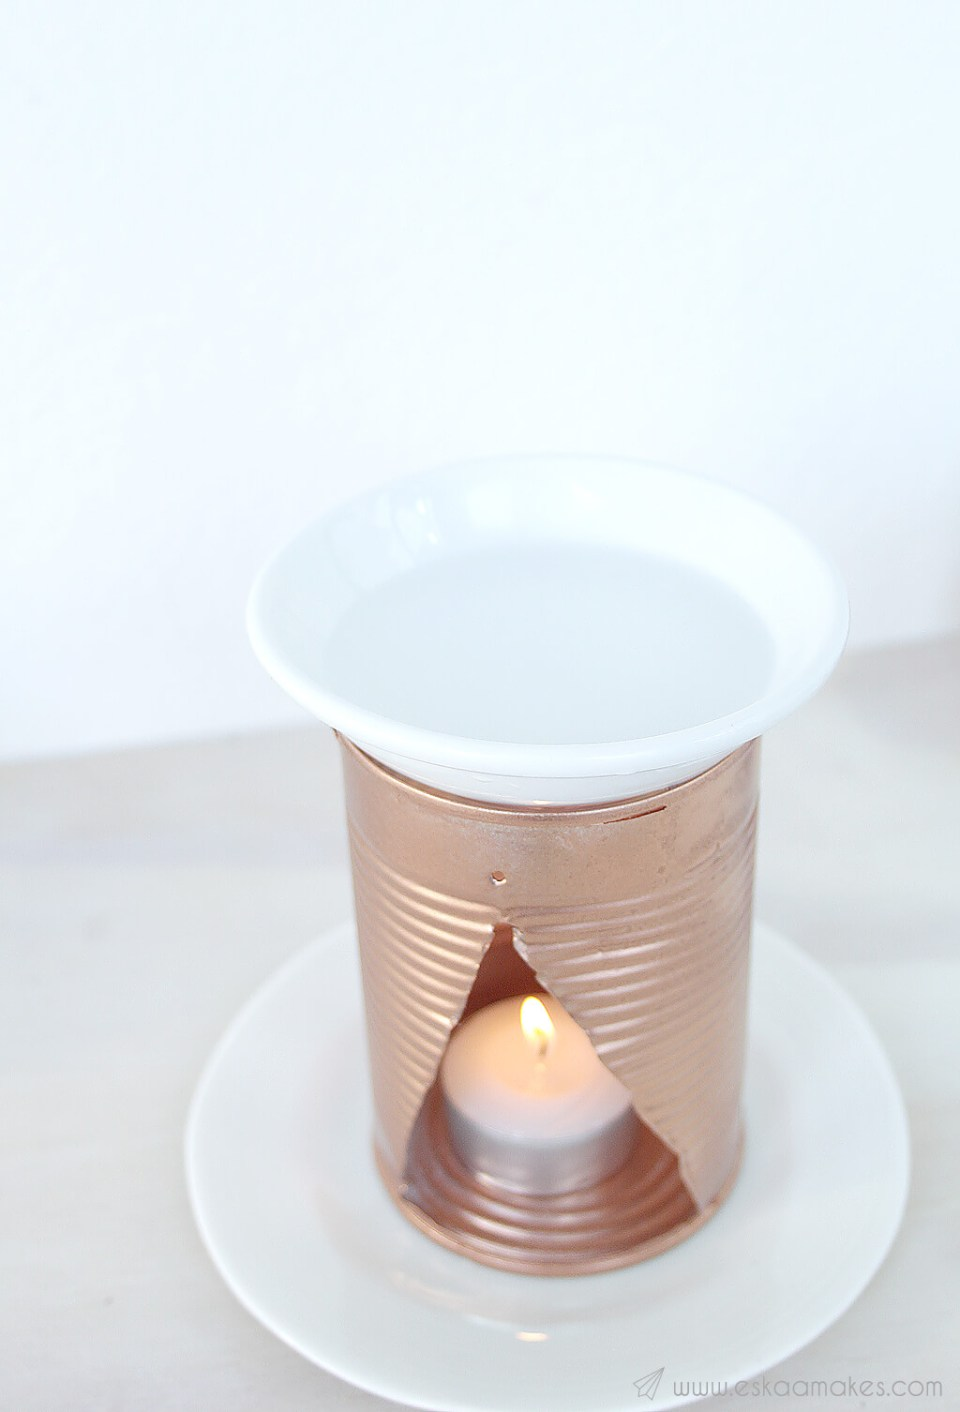 DIY upcycled essential oil burner